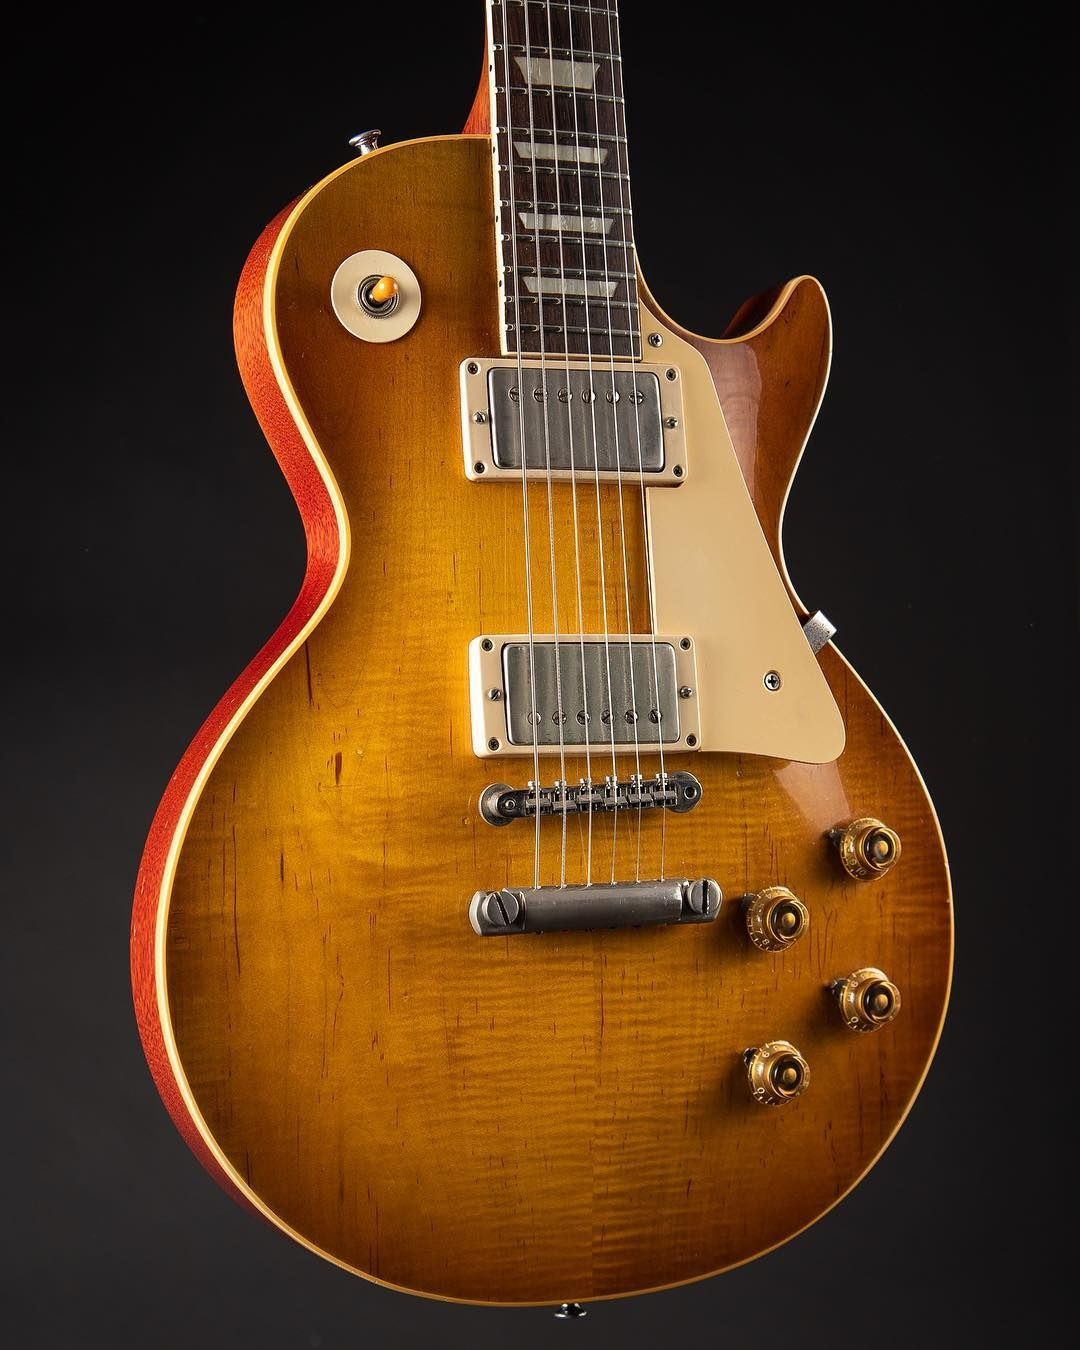 """Carter Vintage Guitars on Instagram: """"A beautiful """"Burst"""" owned by legendary guitarist, Ed King. With a serial number dating early 1960, this Les Paul has the coveted '59 neck…"""""""